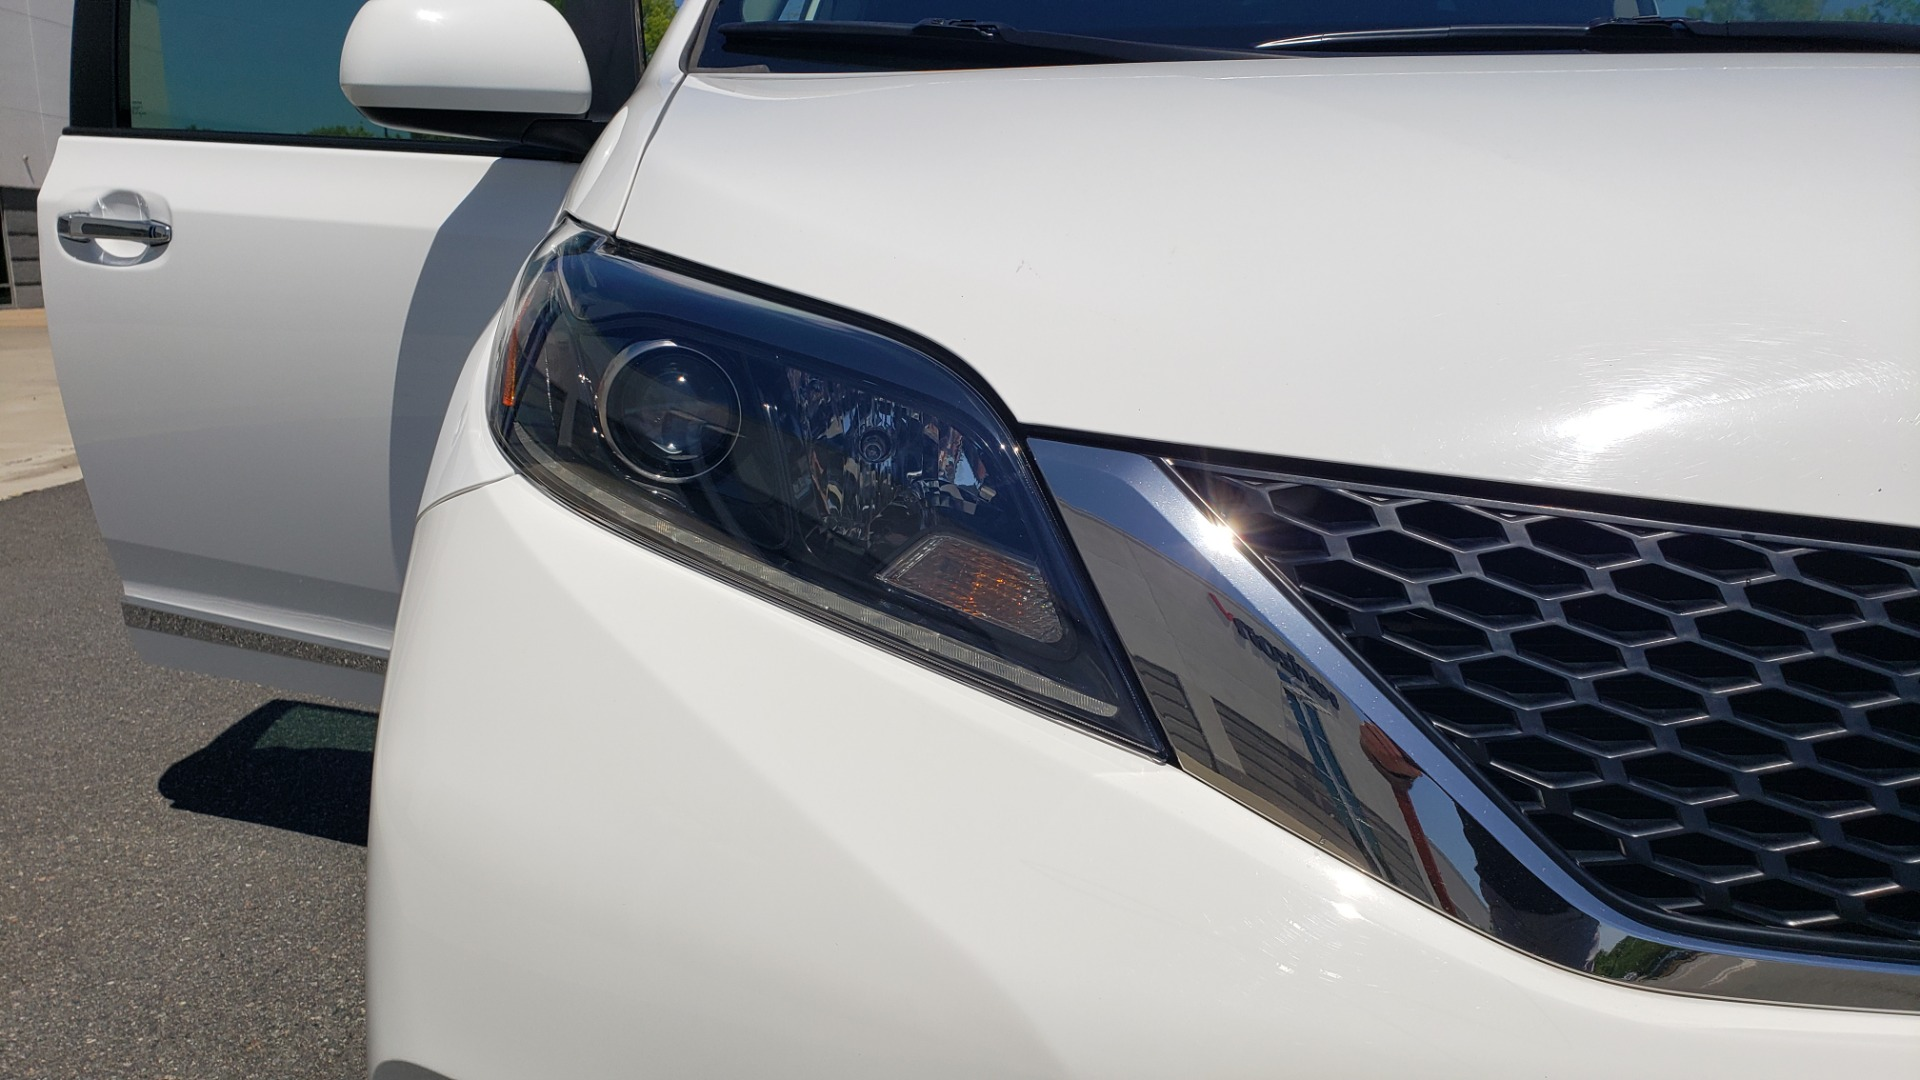 Used 2015 Toyota SIENNA SE 3.5L / FWD / 3-ROWS / 8-PASS / SUNROOF / DVD / REARVIEW for sale $21,995 at Formula Imports in Charlotte NC 28227 23